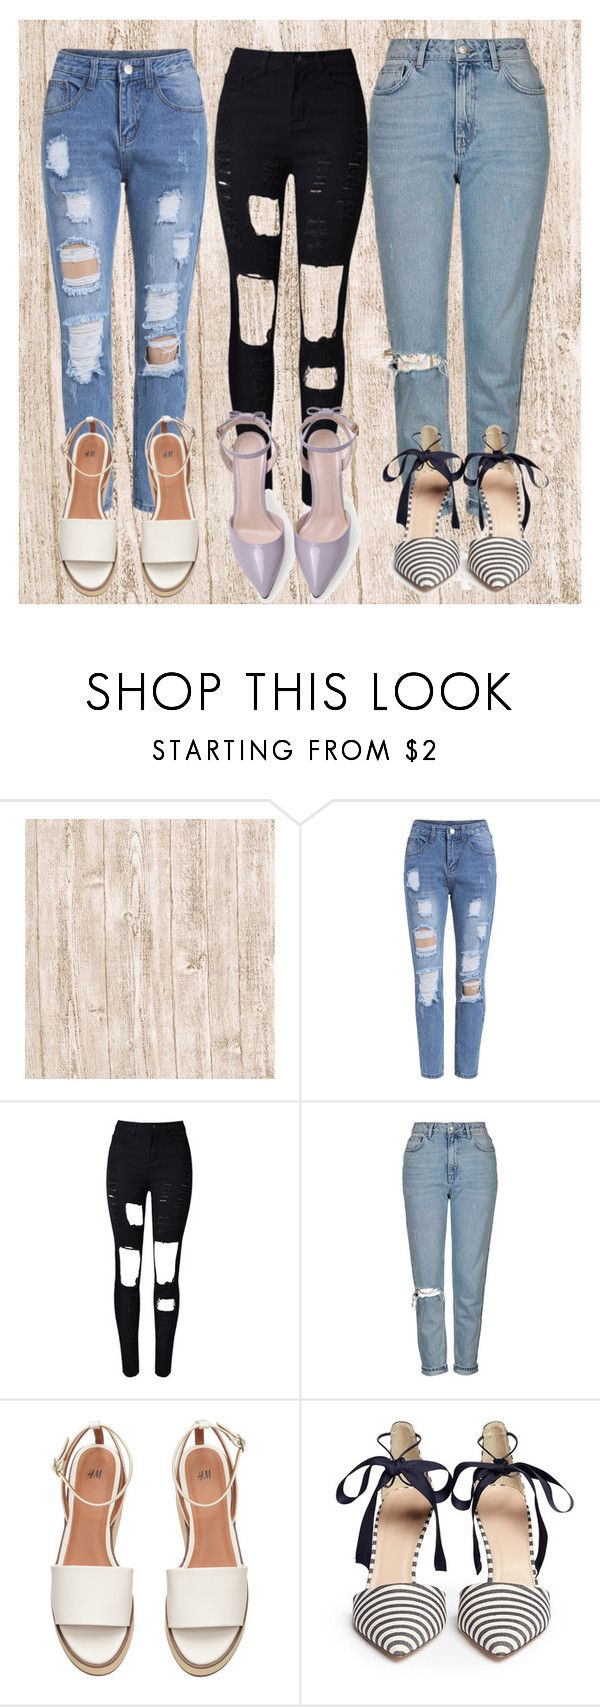 """Set."" by ro-mondryk on Polyvore featuring Topshop and J.Crew"